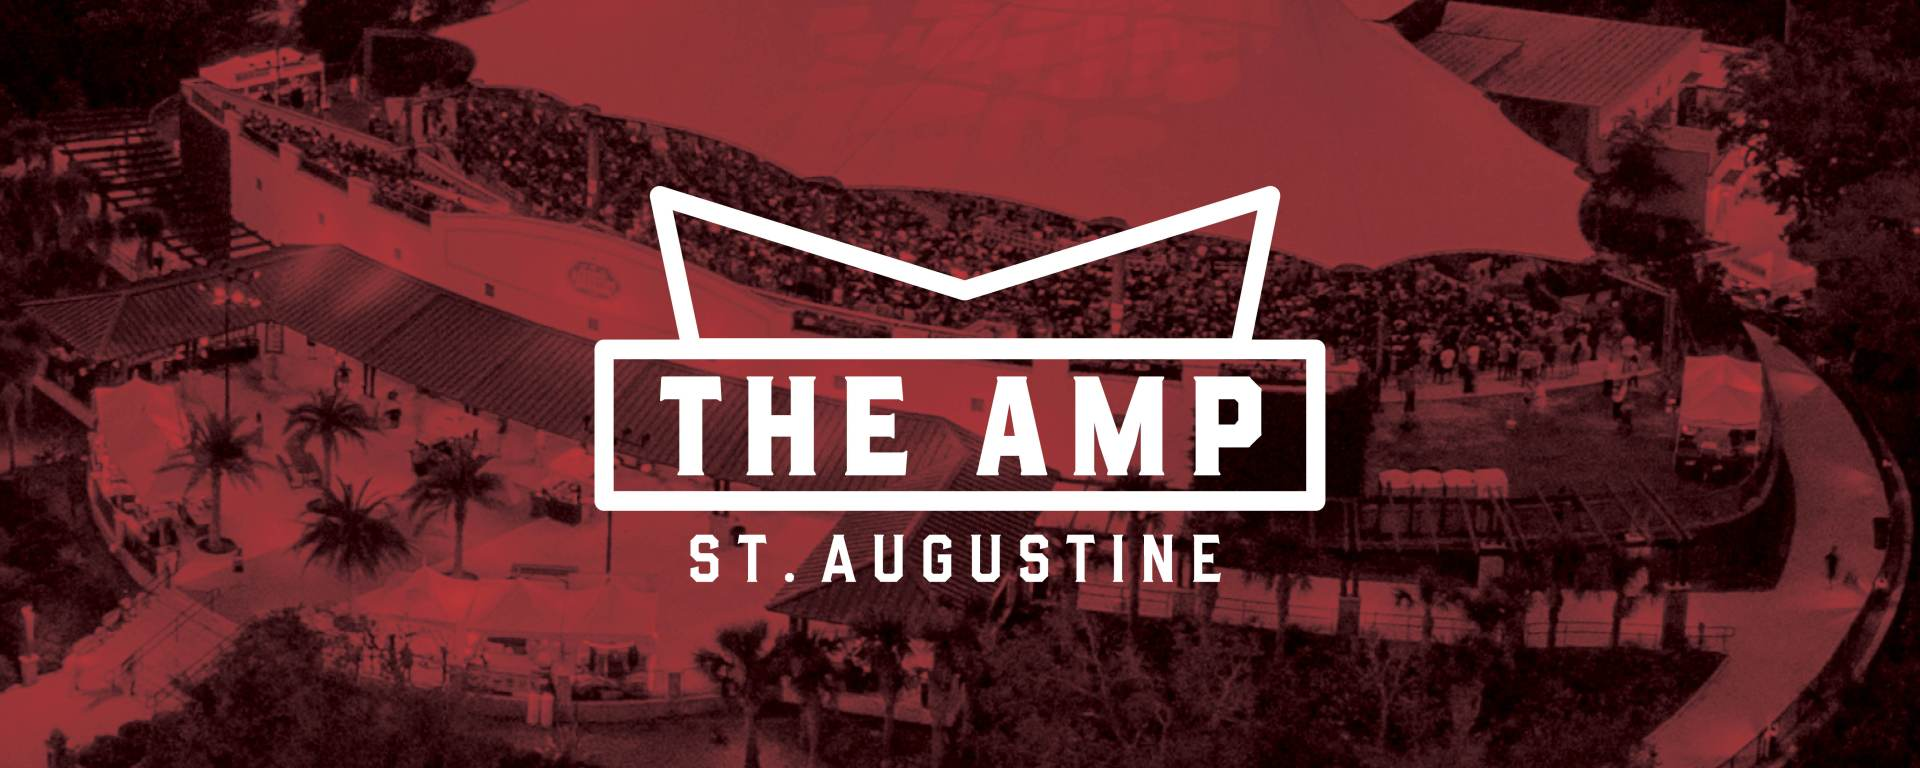 the amp st Augustine venue and logo